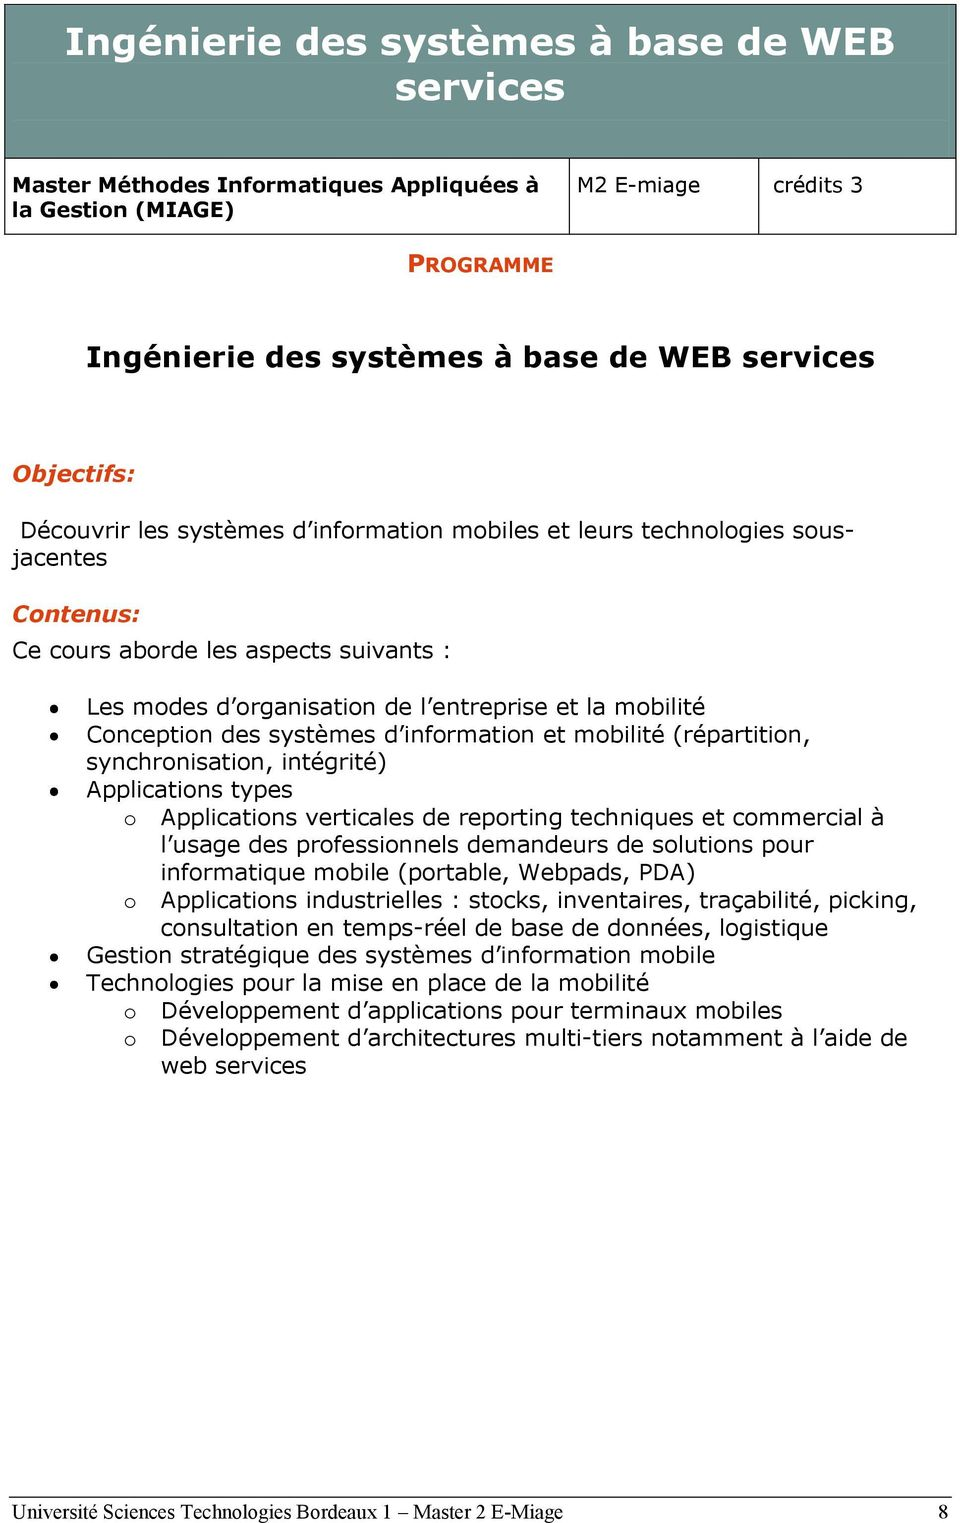 Applications verticales de reporting techniques et commercial à l usage des professionnels demandeurs de solutions pour informatique mobile (portable, Webpads, PDA) o Applications industrielles :